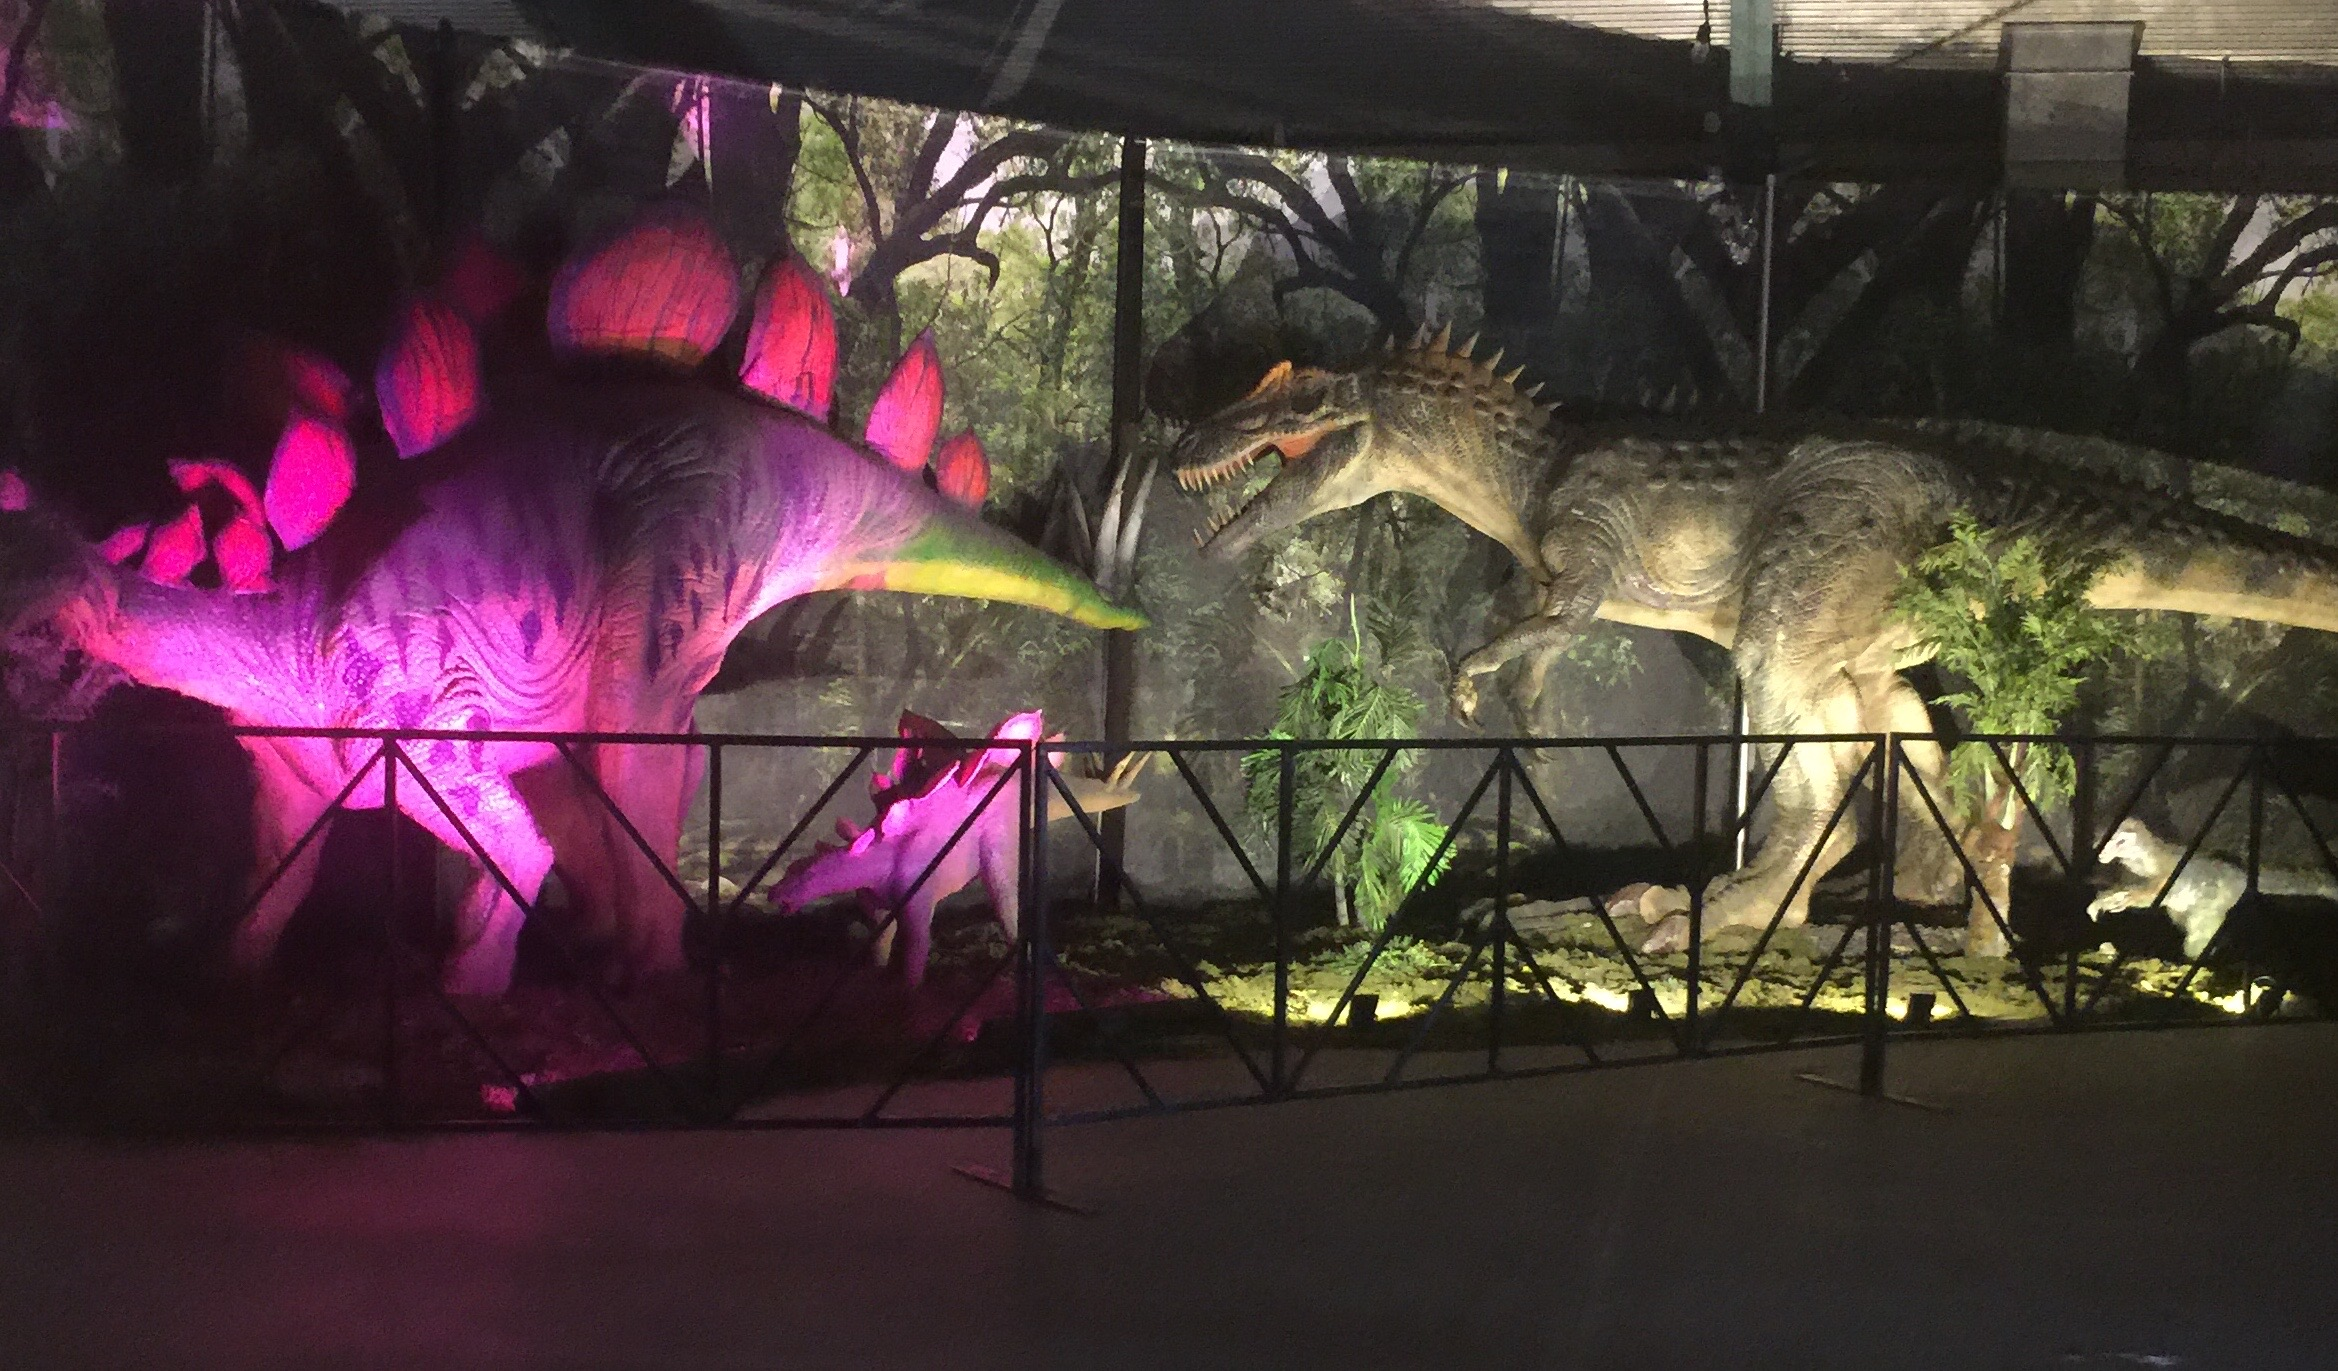 Jurassic Quest Paso Robles Dino Exhibit lighting - Two In